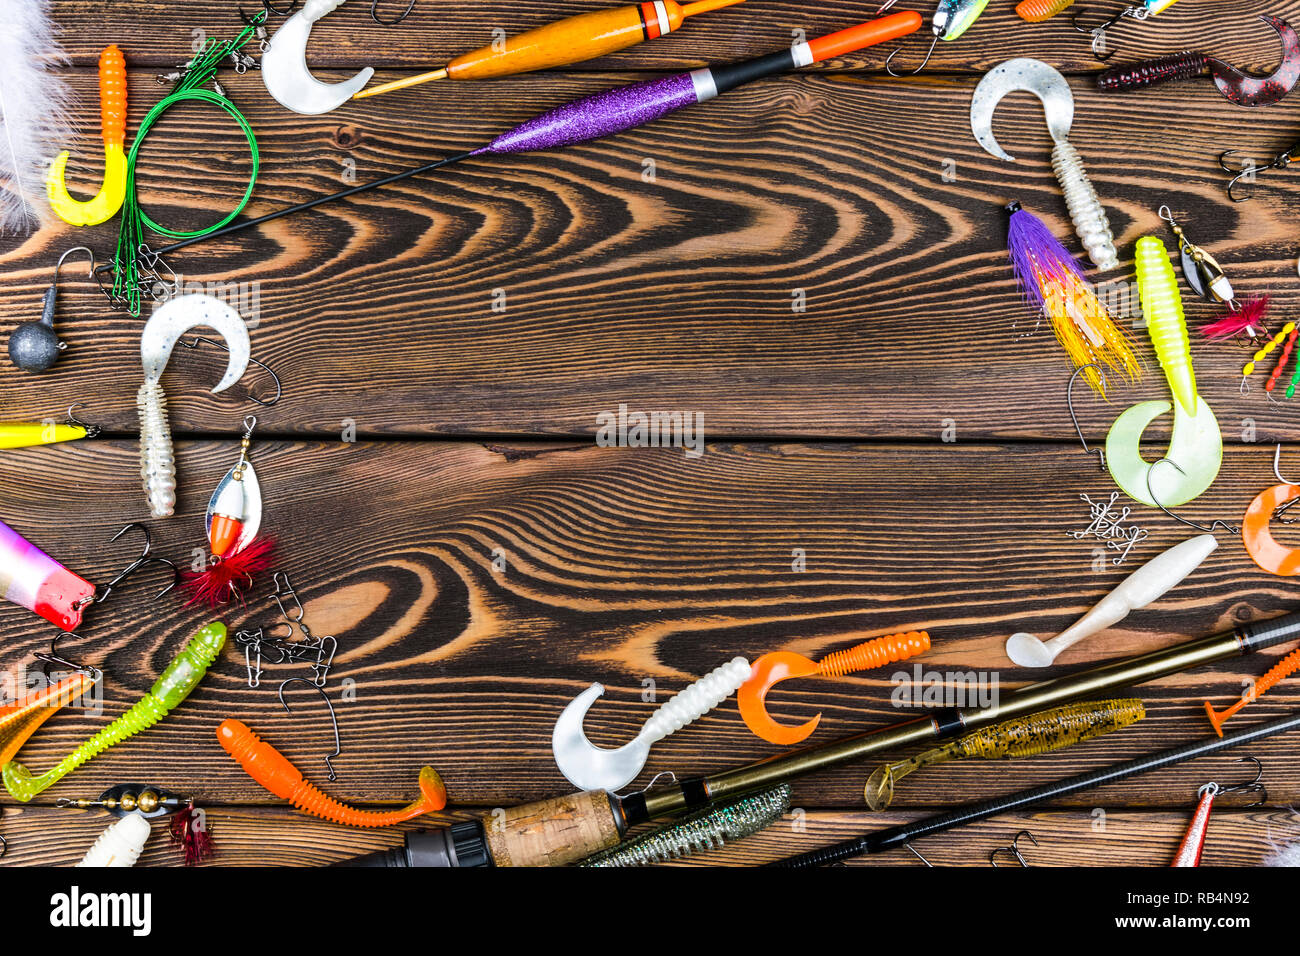 Sankt-Petersburg, Russia, June 16, 2017: Fishing rod, tackles and fishing baits, reel on wooden board background - Stock Image